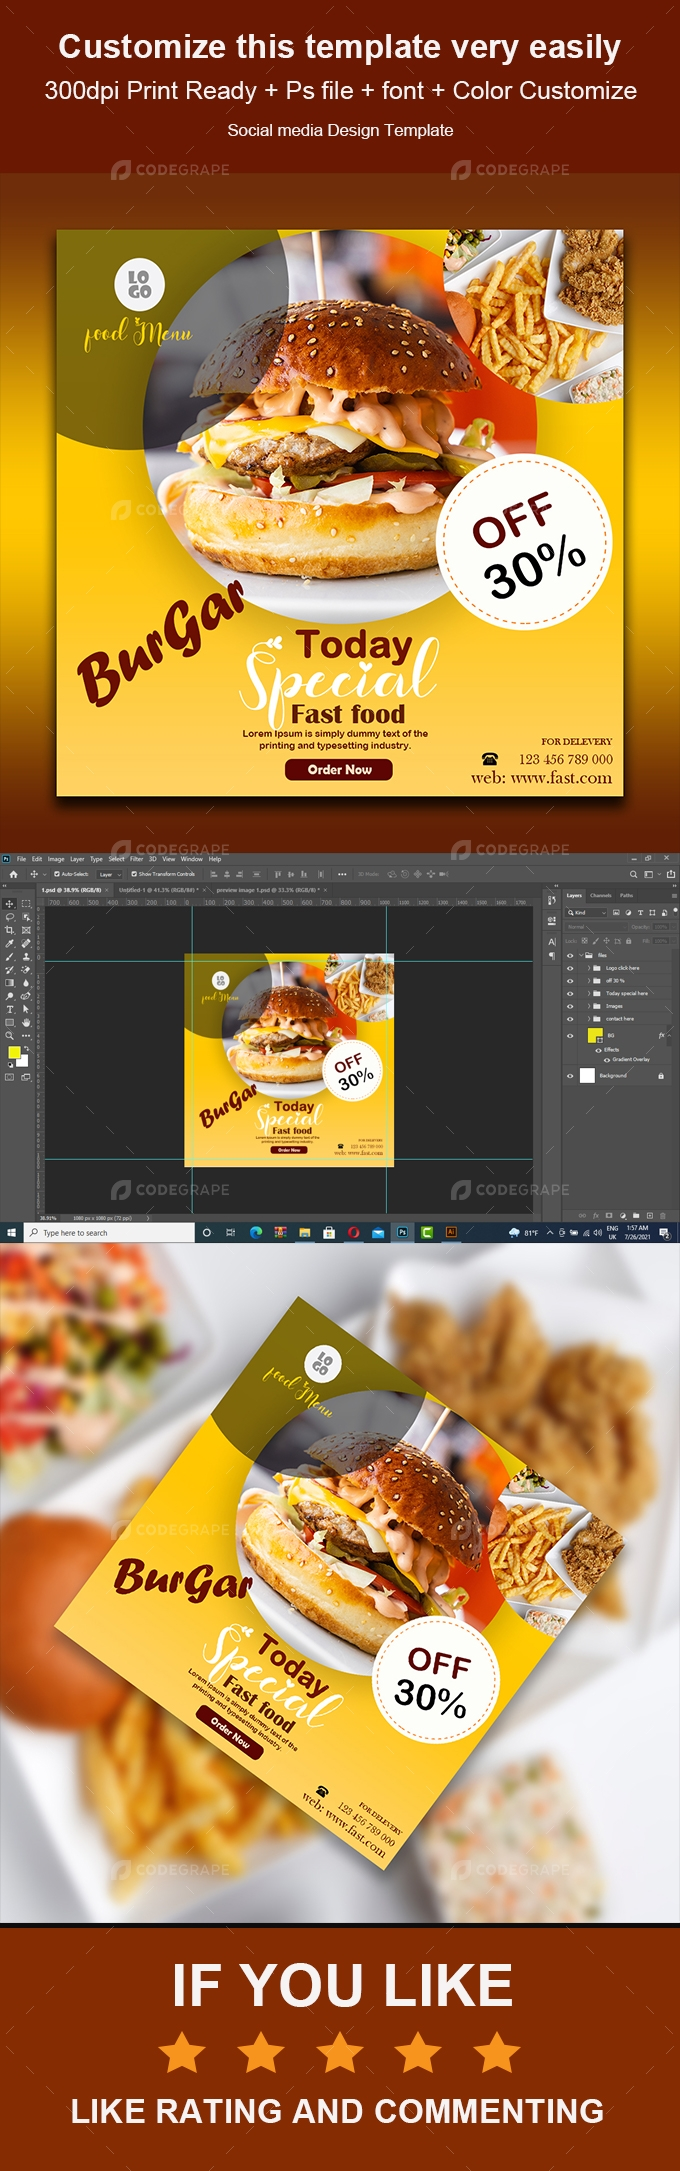 Fast Food Banners or Social Media Posts